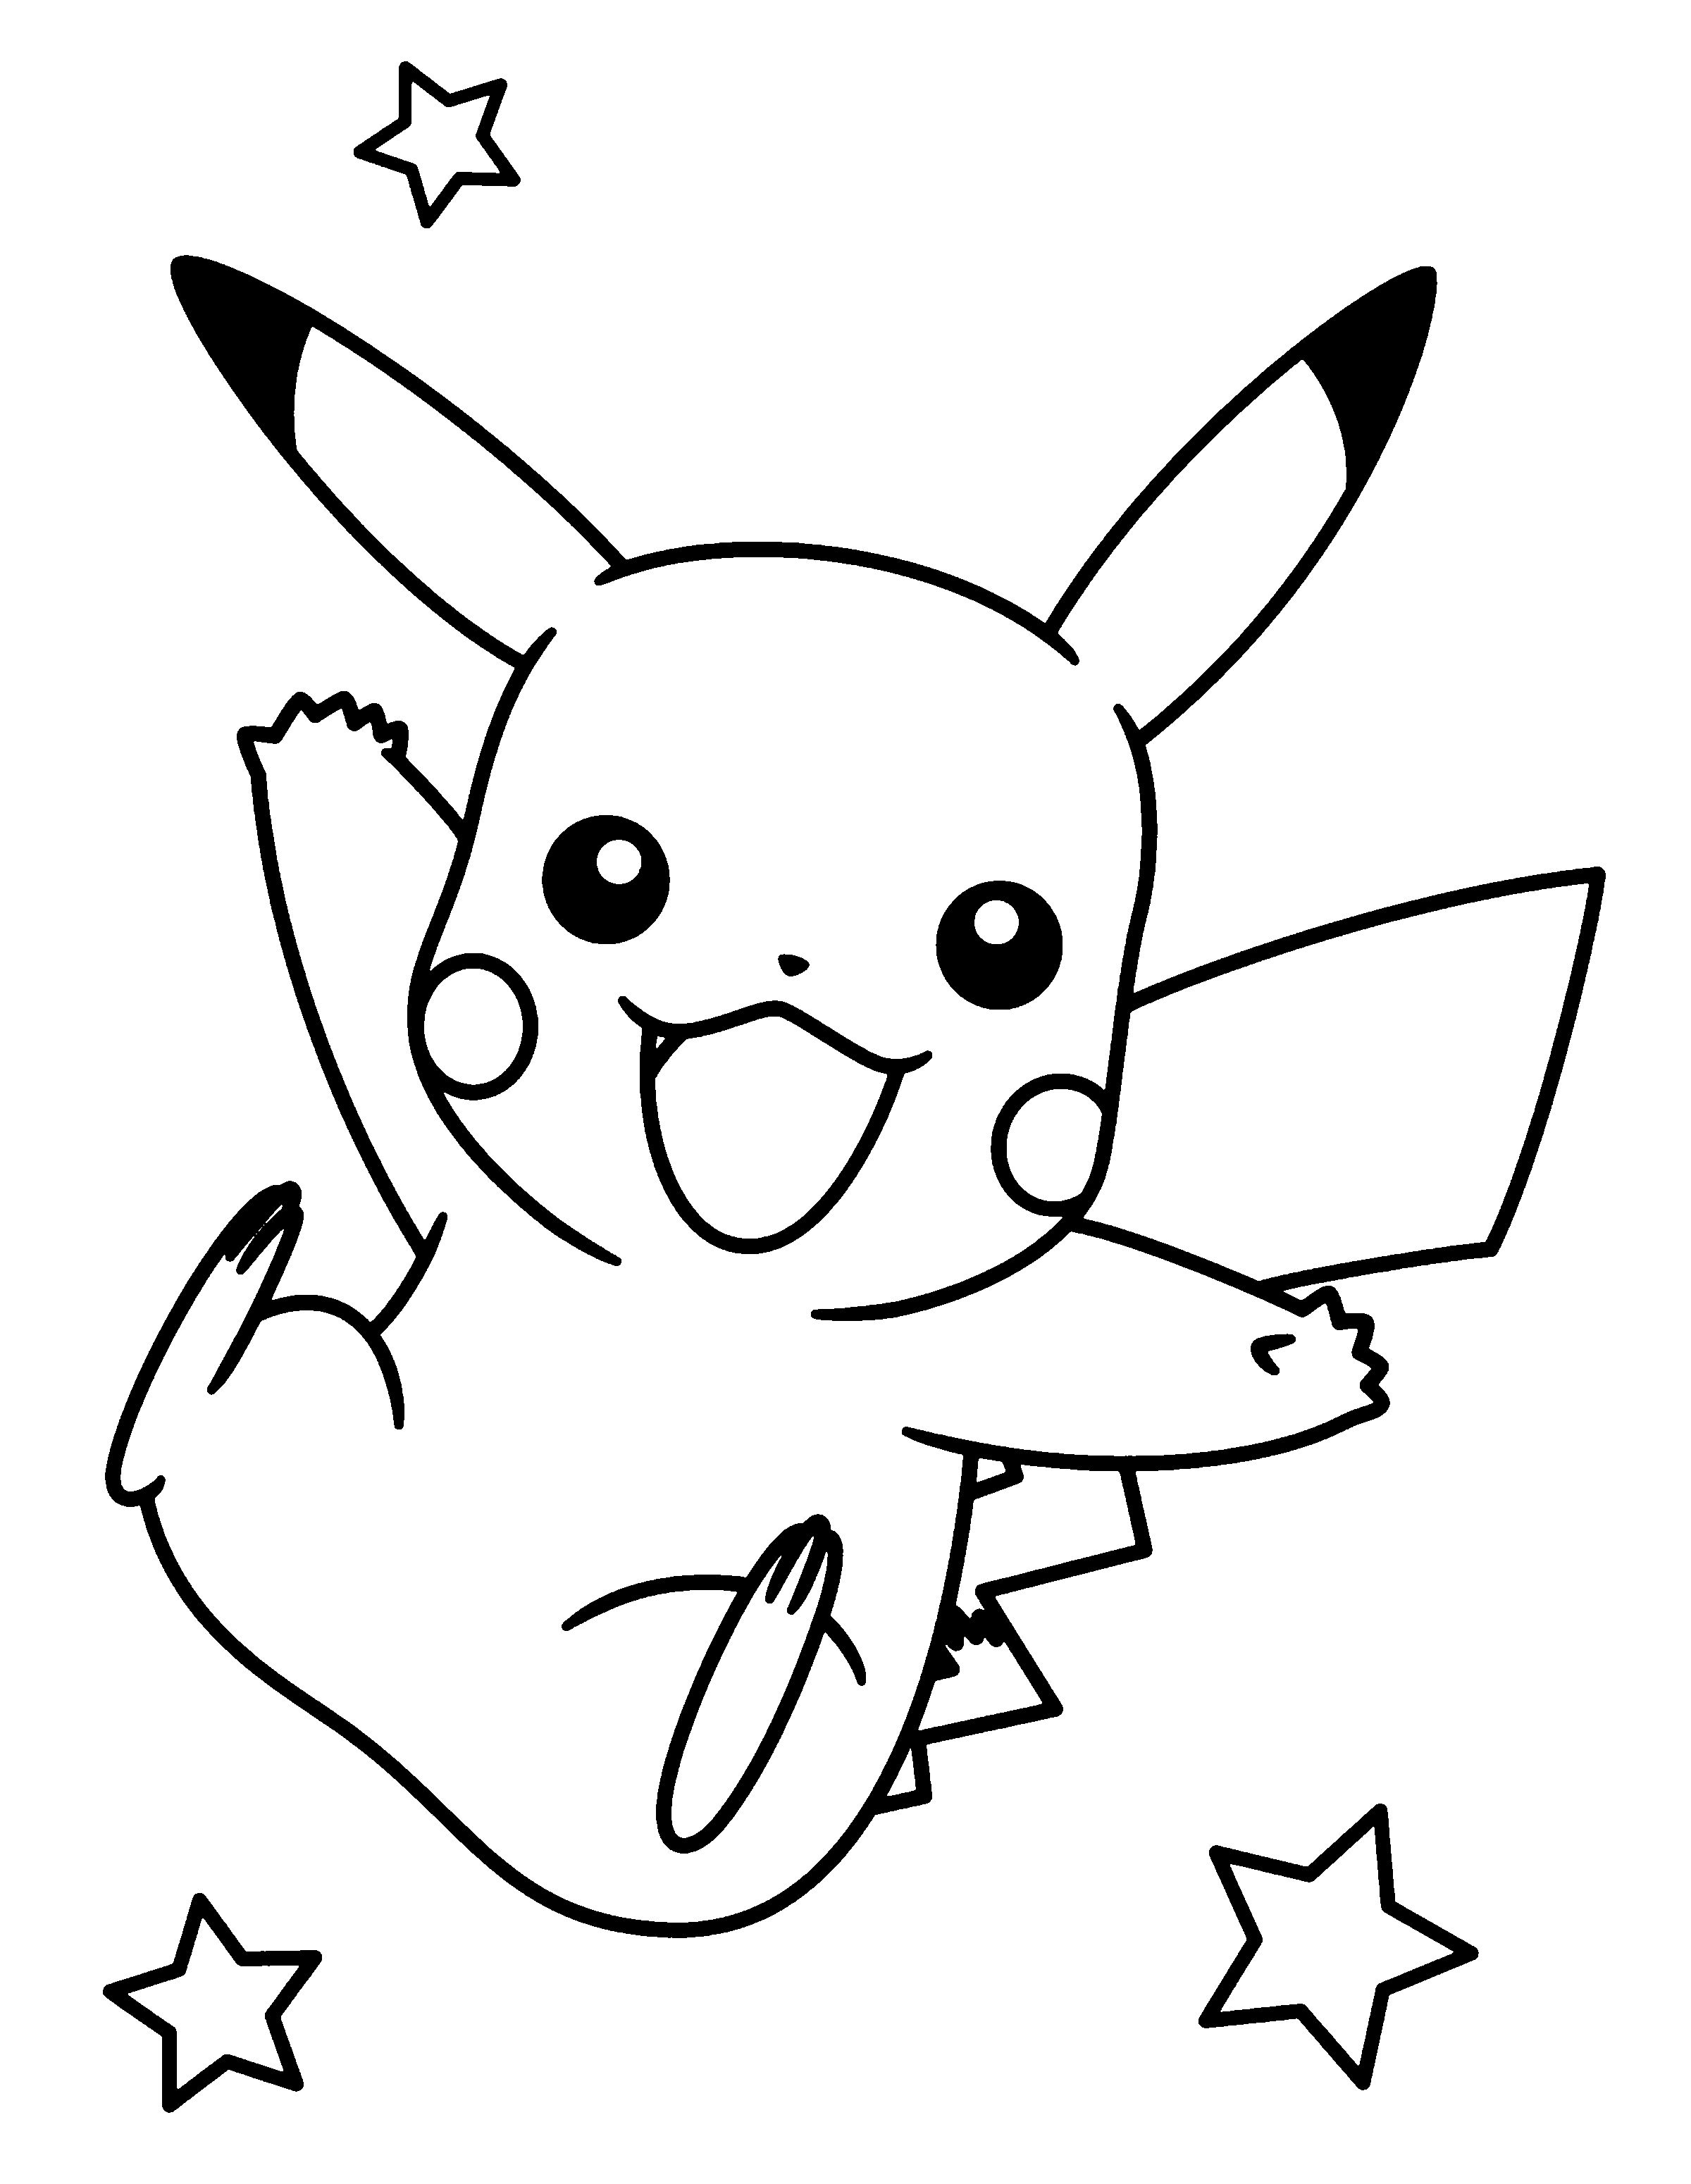 Diamond Coloring Page Printables Http Www Wallpaperartdesignhd Us Diamond Coloring Page P Pikachu Coloring Page Pokemon Coloring Pages Cartoon Coloring Pages